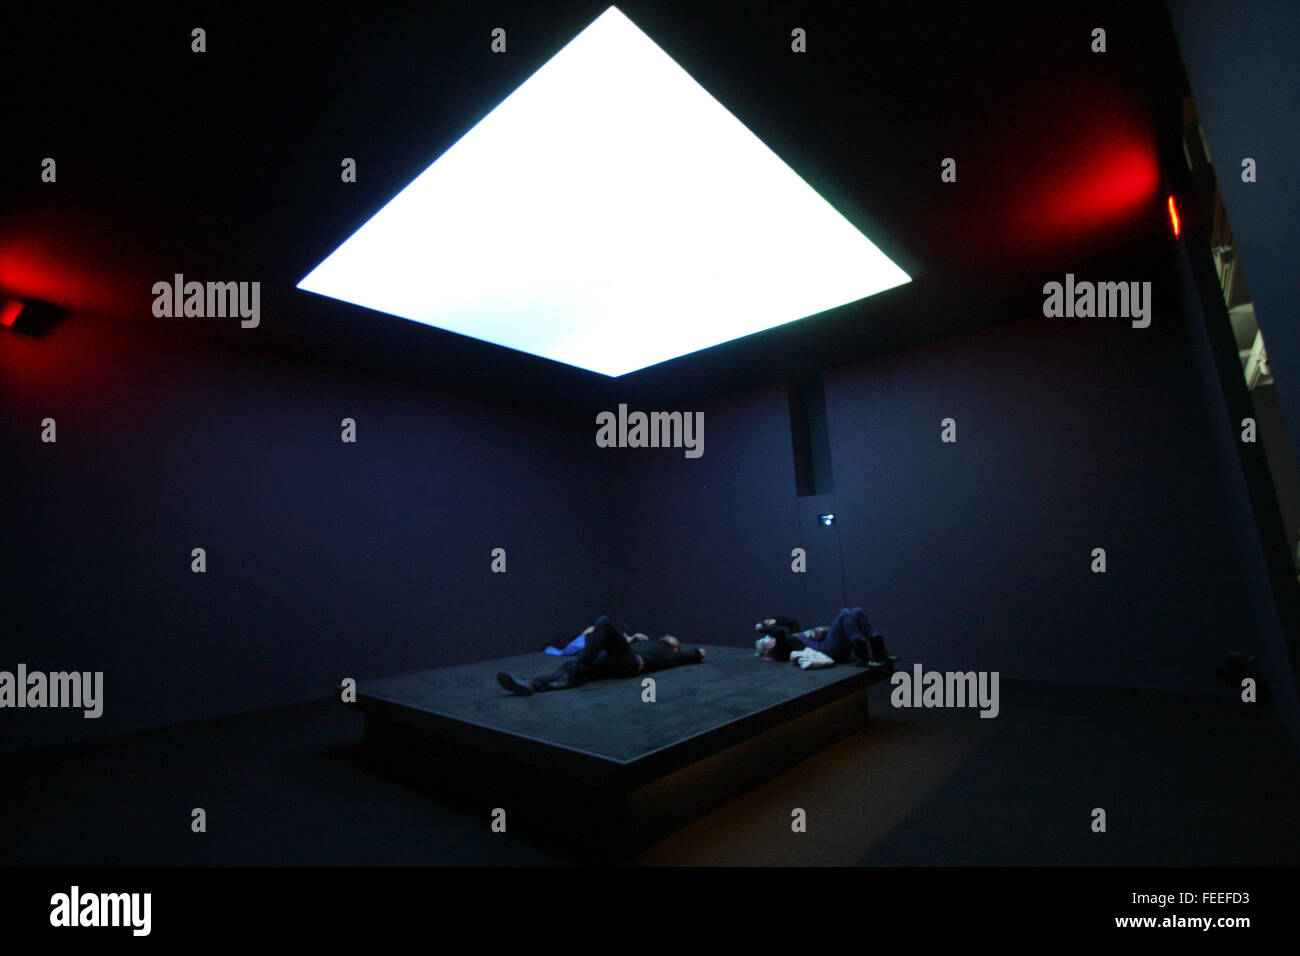 Astro Noise, the first solo exhibit by artist Laura Poitras at the Whitney Museum of American Art in New York Cit - Stock Image